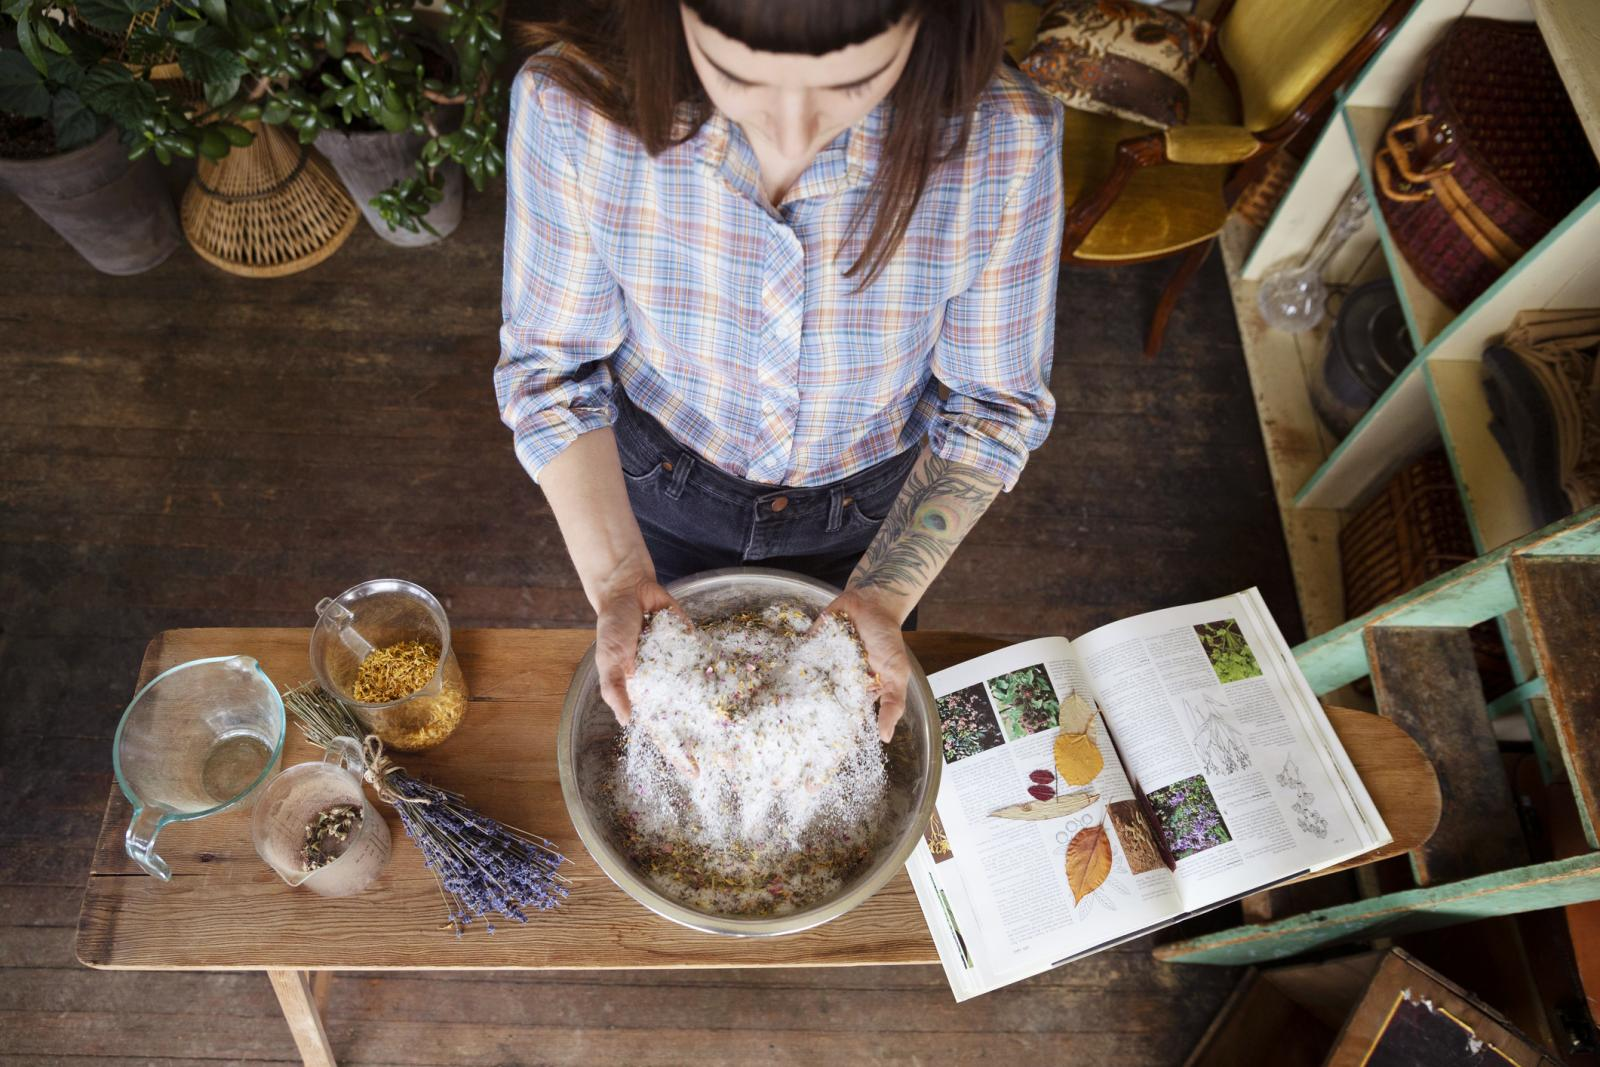 Female business owner mixing herbs and dried flowers in apothecary shop